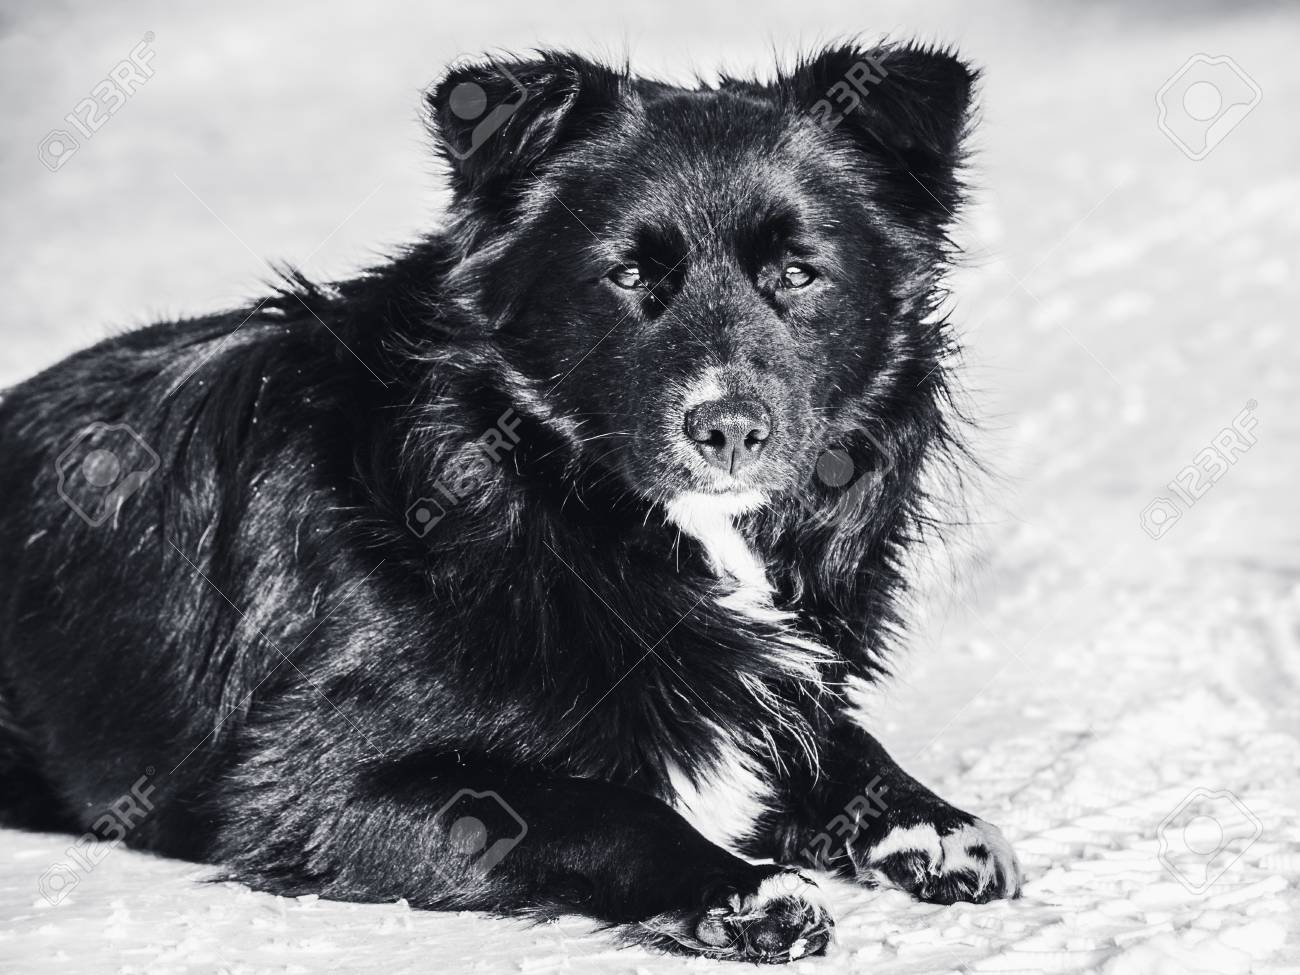 A stray dog lies on the snow monochrome photo. Homelessness, loneliness, hunger. - 98833590